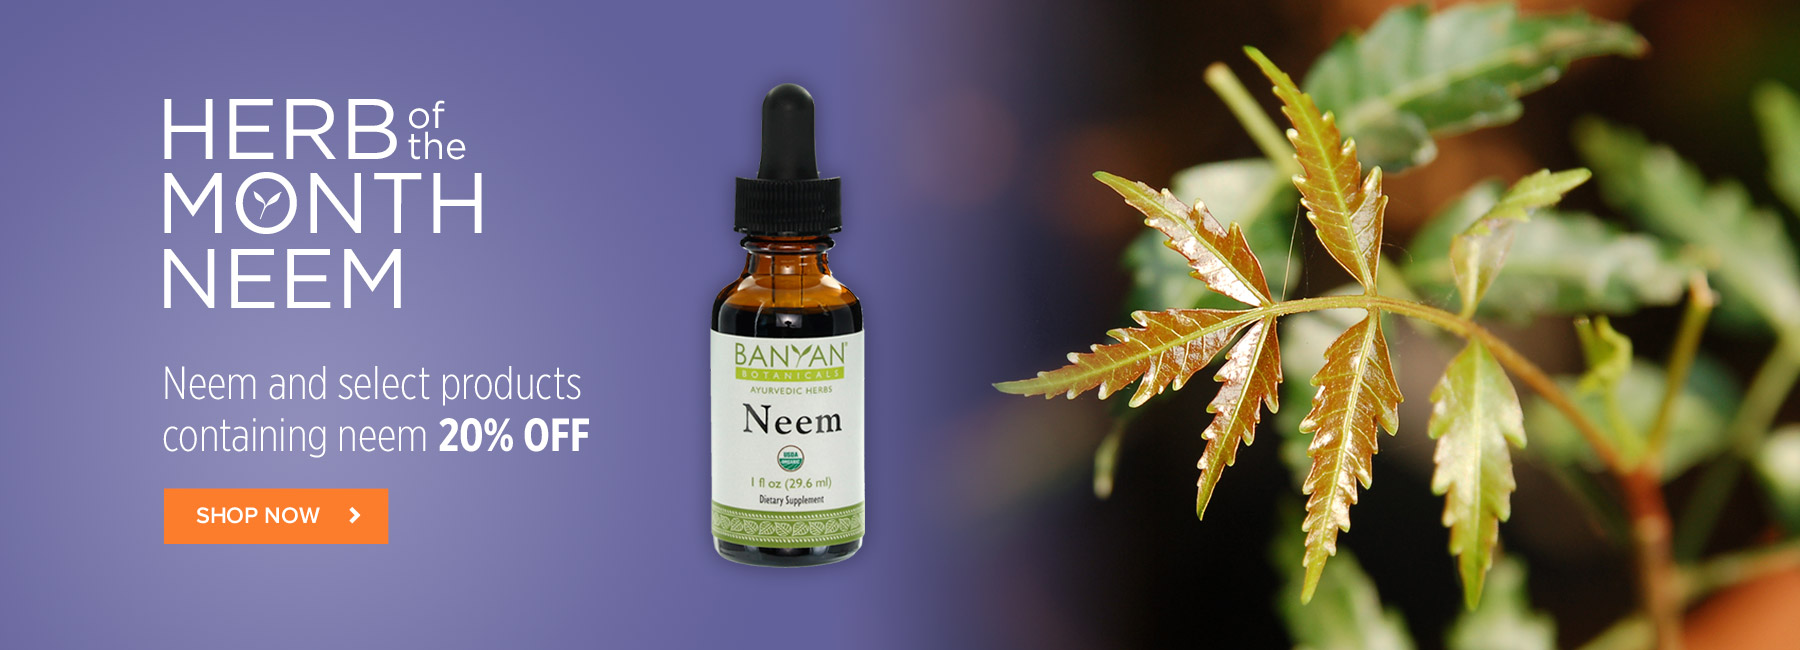 Herb of the Month Neem - Save 20% OFF Neem and select products containing Neem